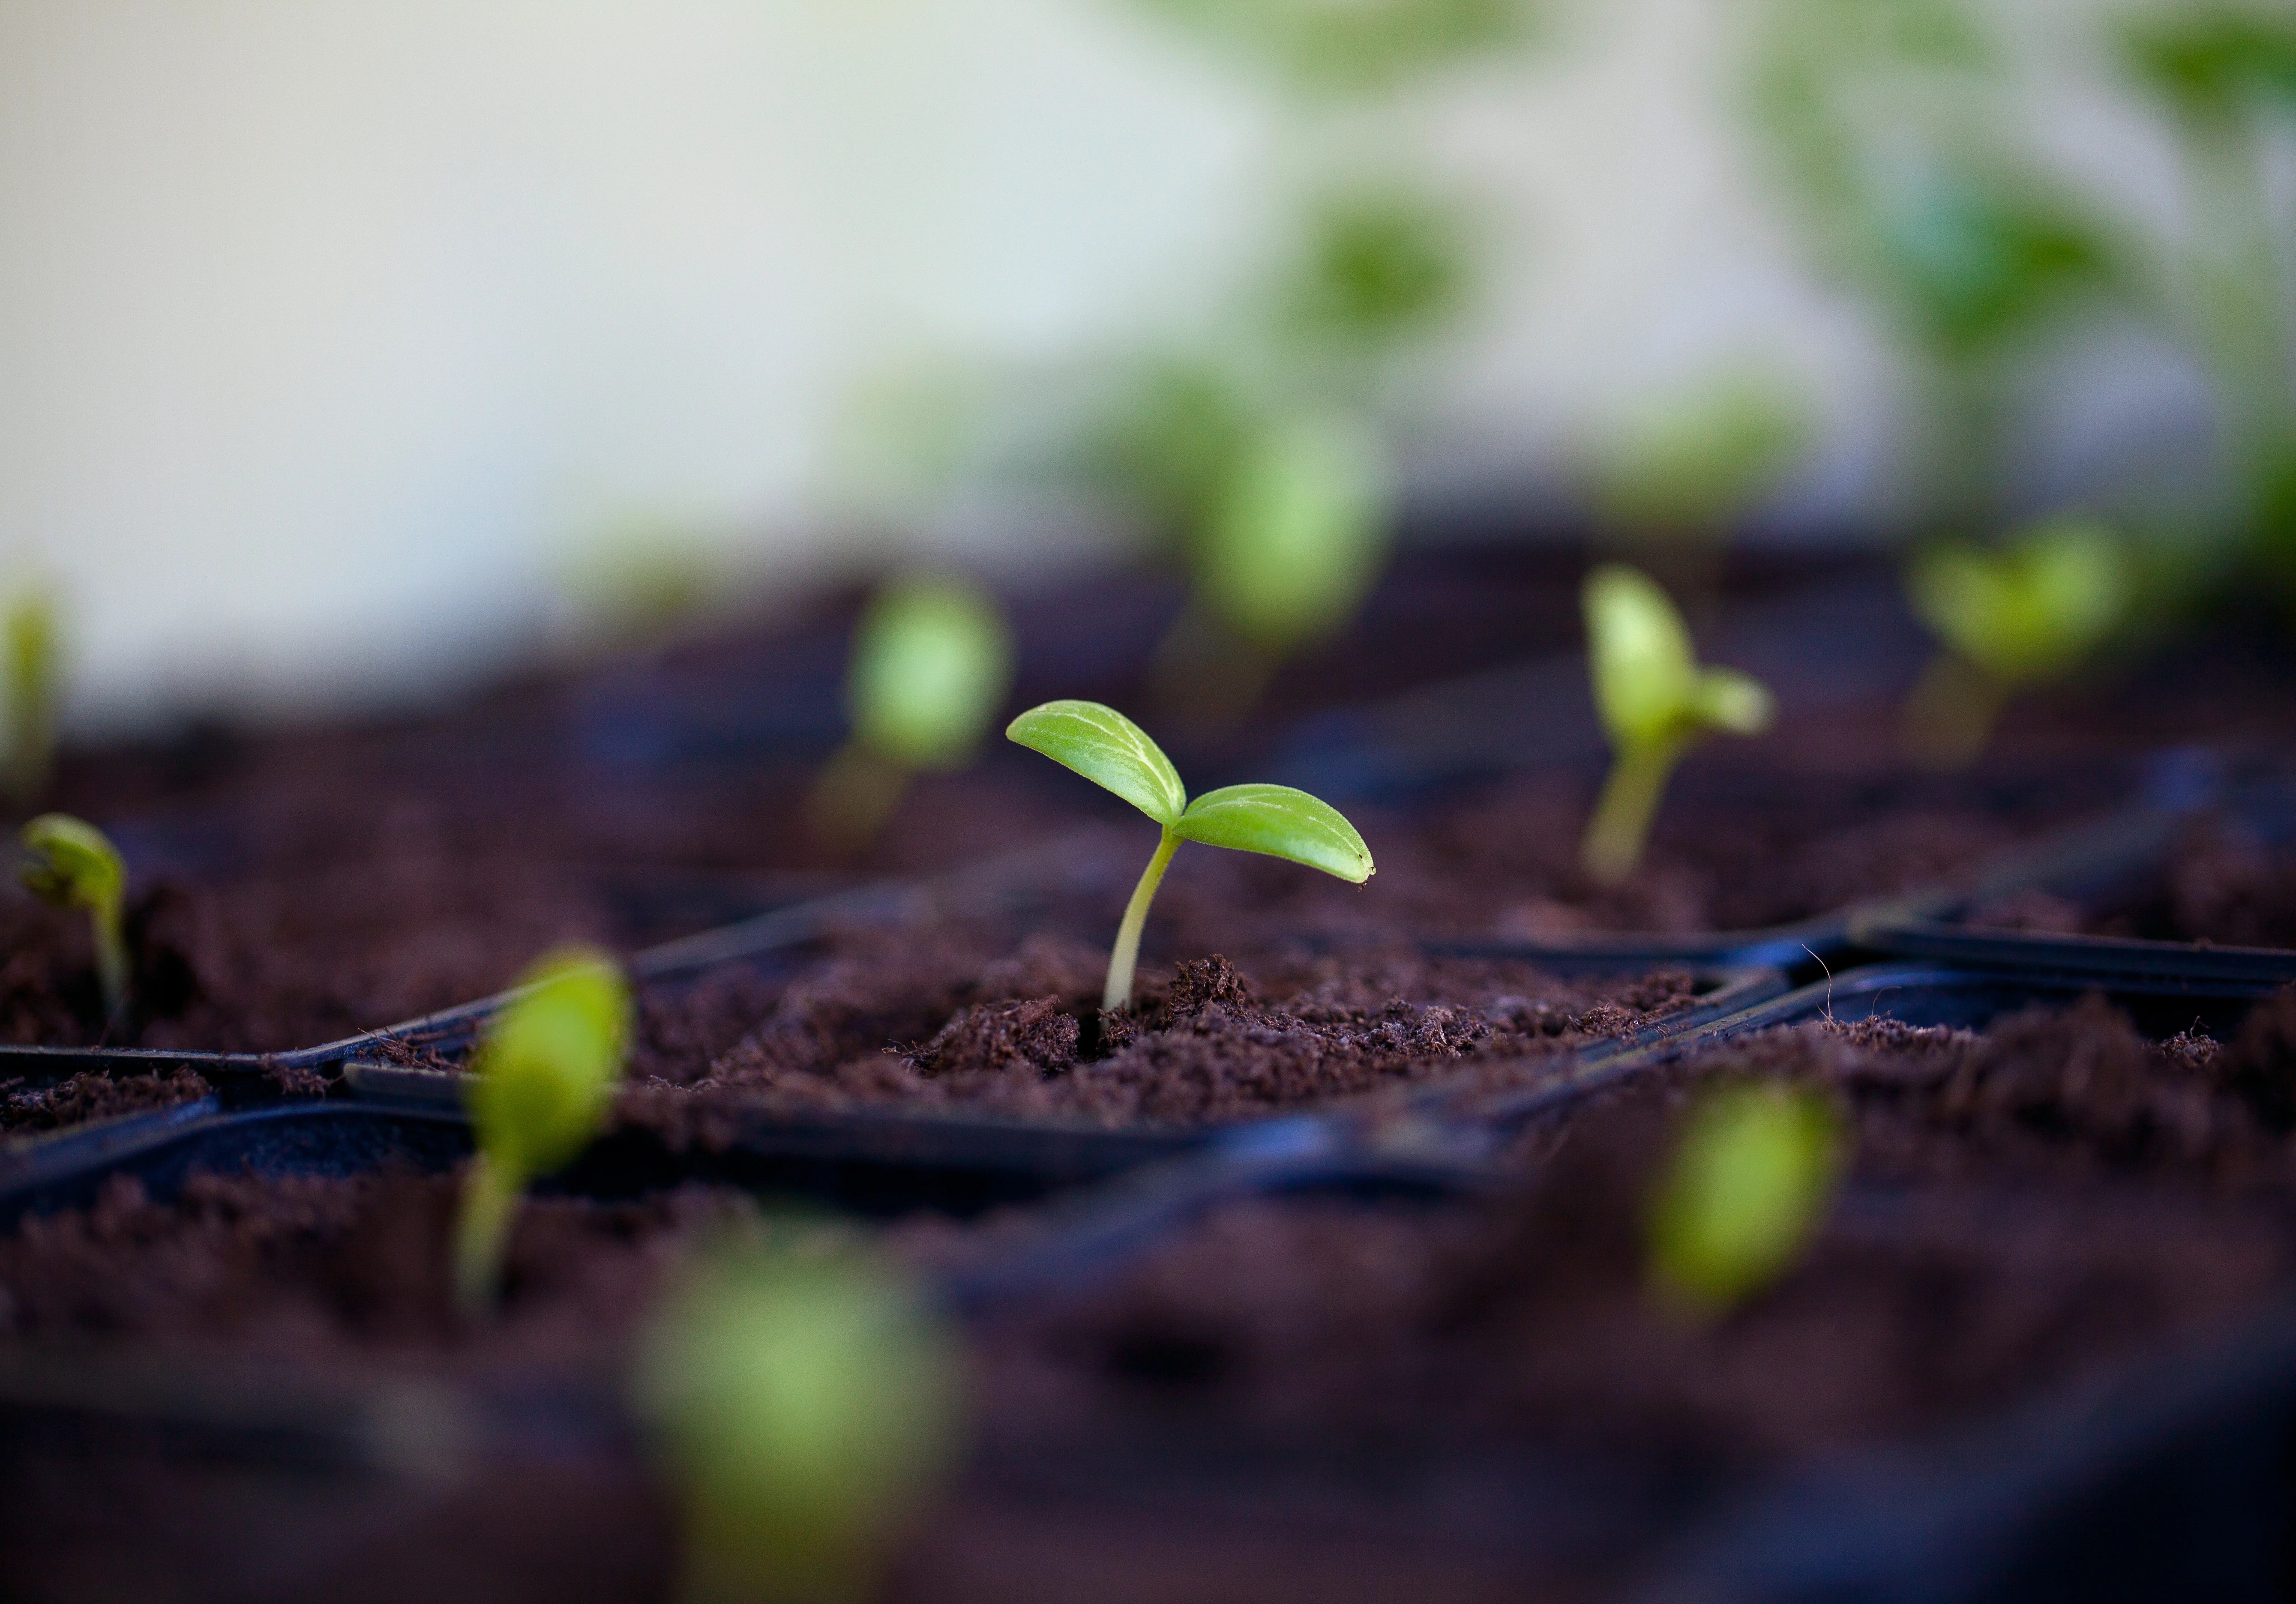 How To Test Old Seeds